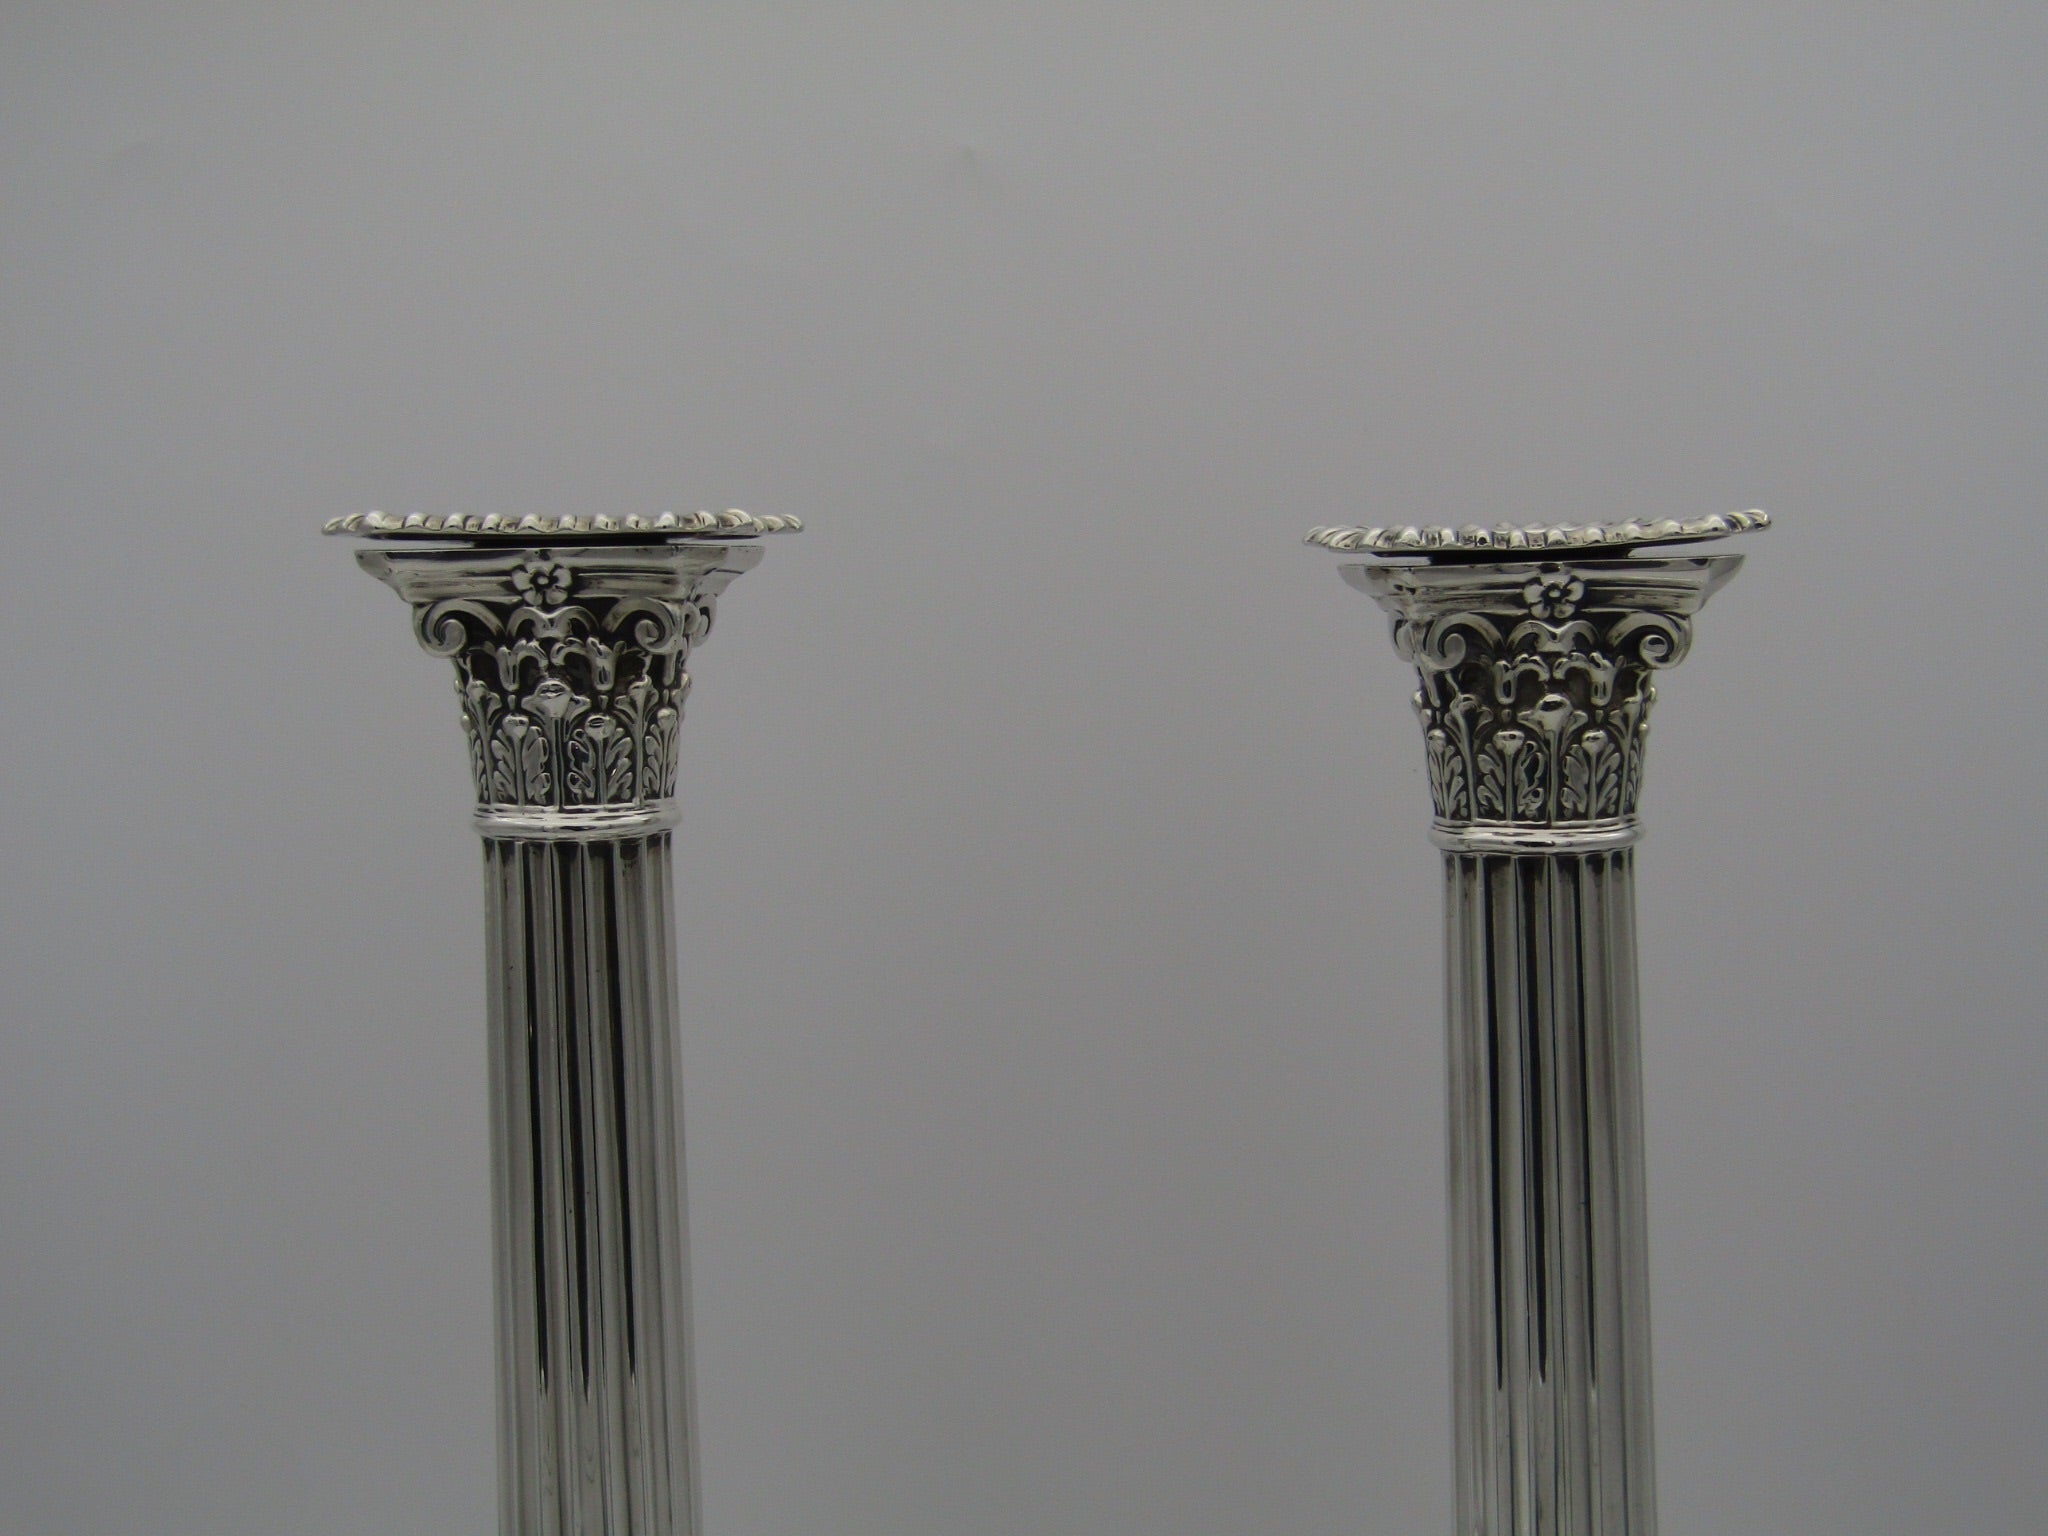 Pair of Corinthian style silver candlesticks by Hawksworth Eyre & Co Ltd. Made in Sheffield 1905.